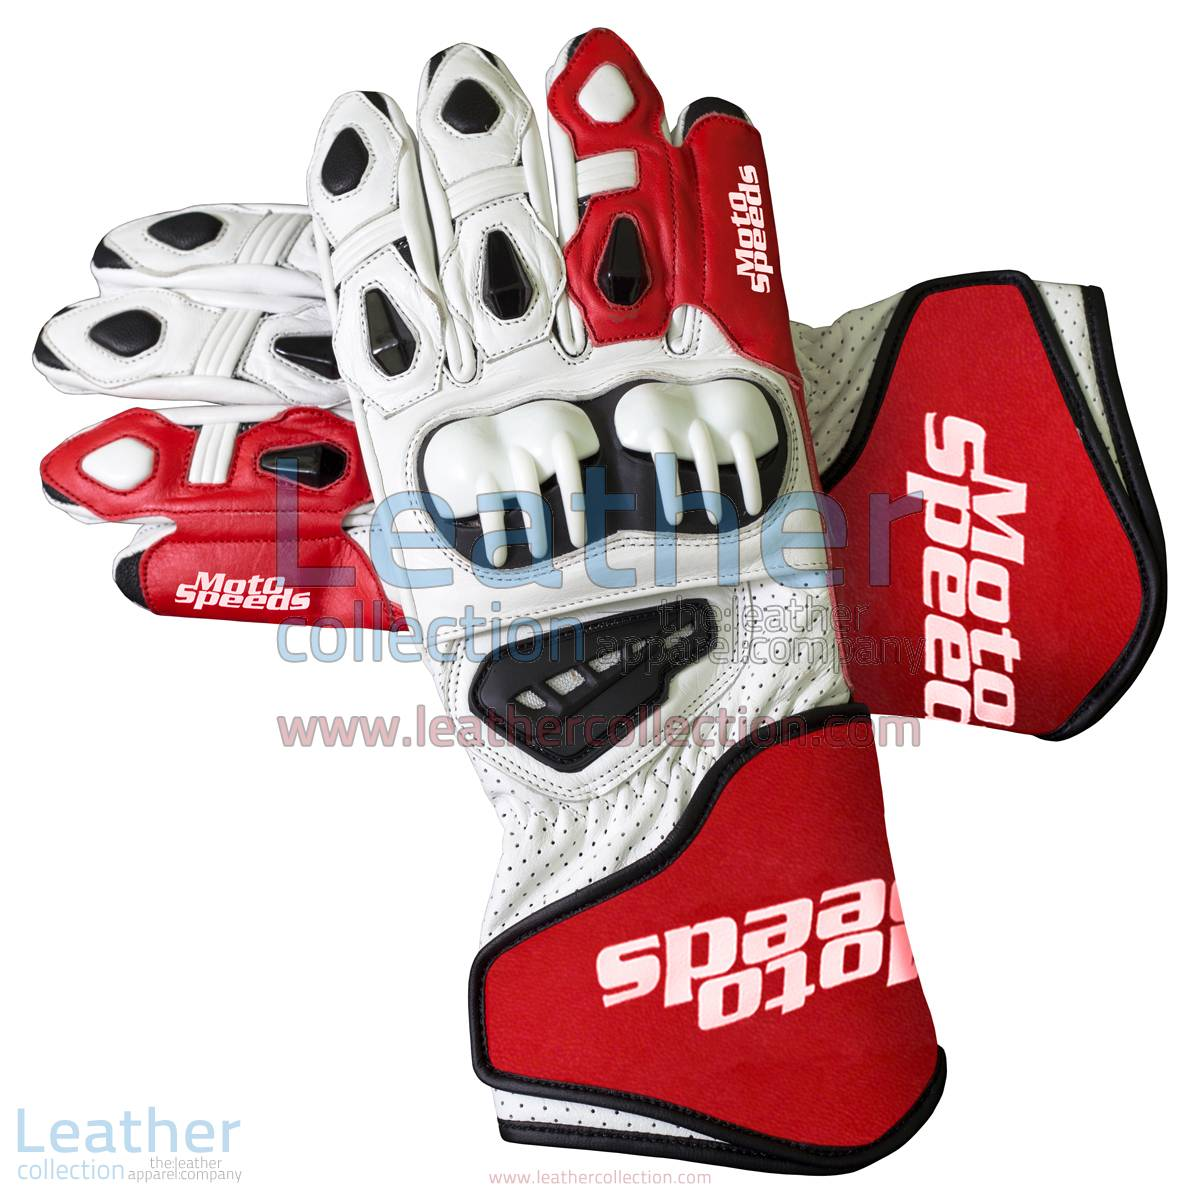 Red & White Leather Moto Gloves | leather moto gloves